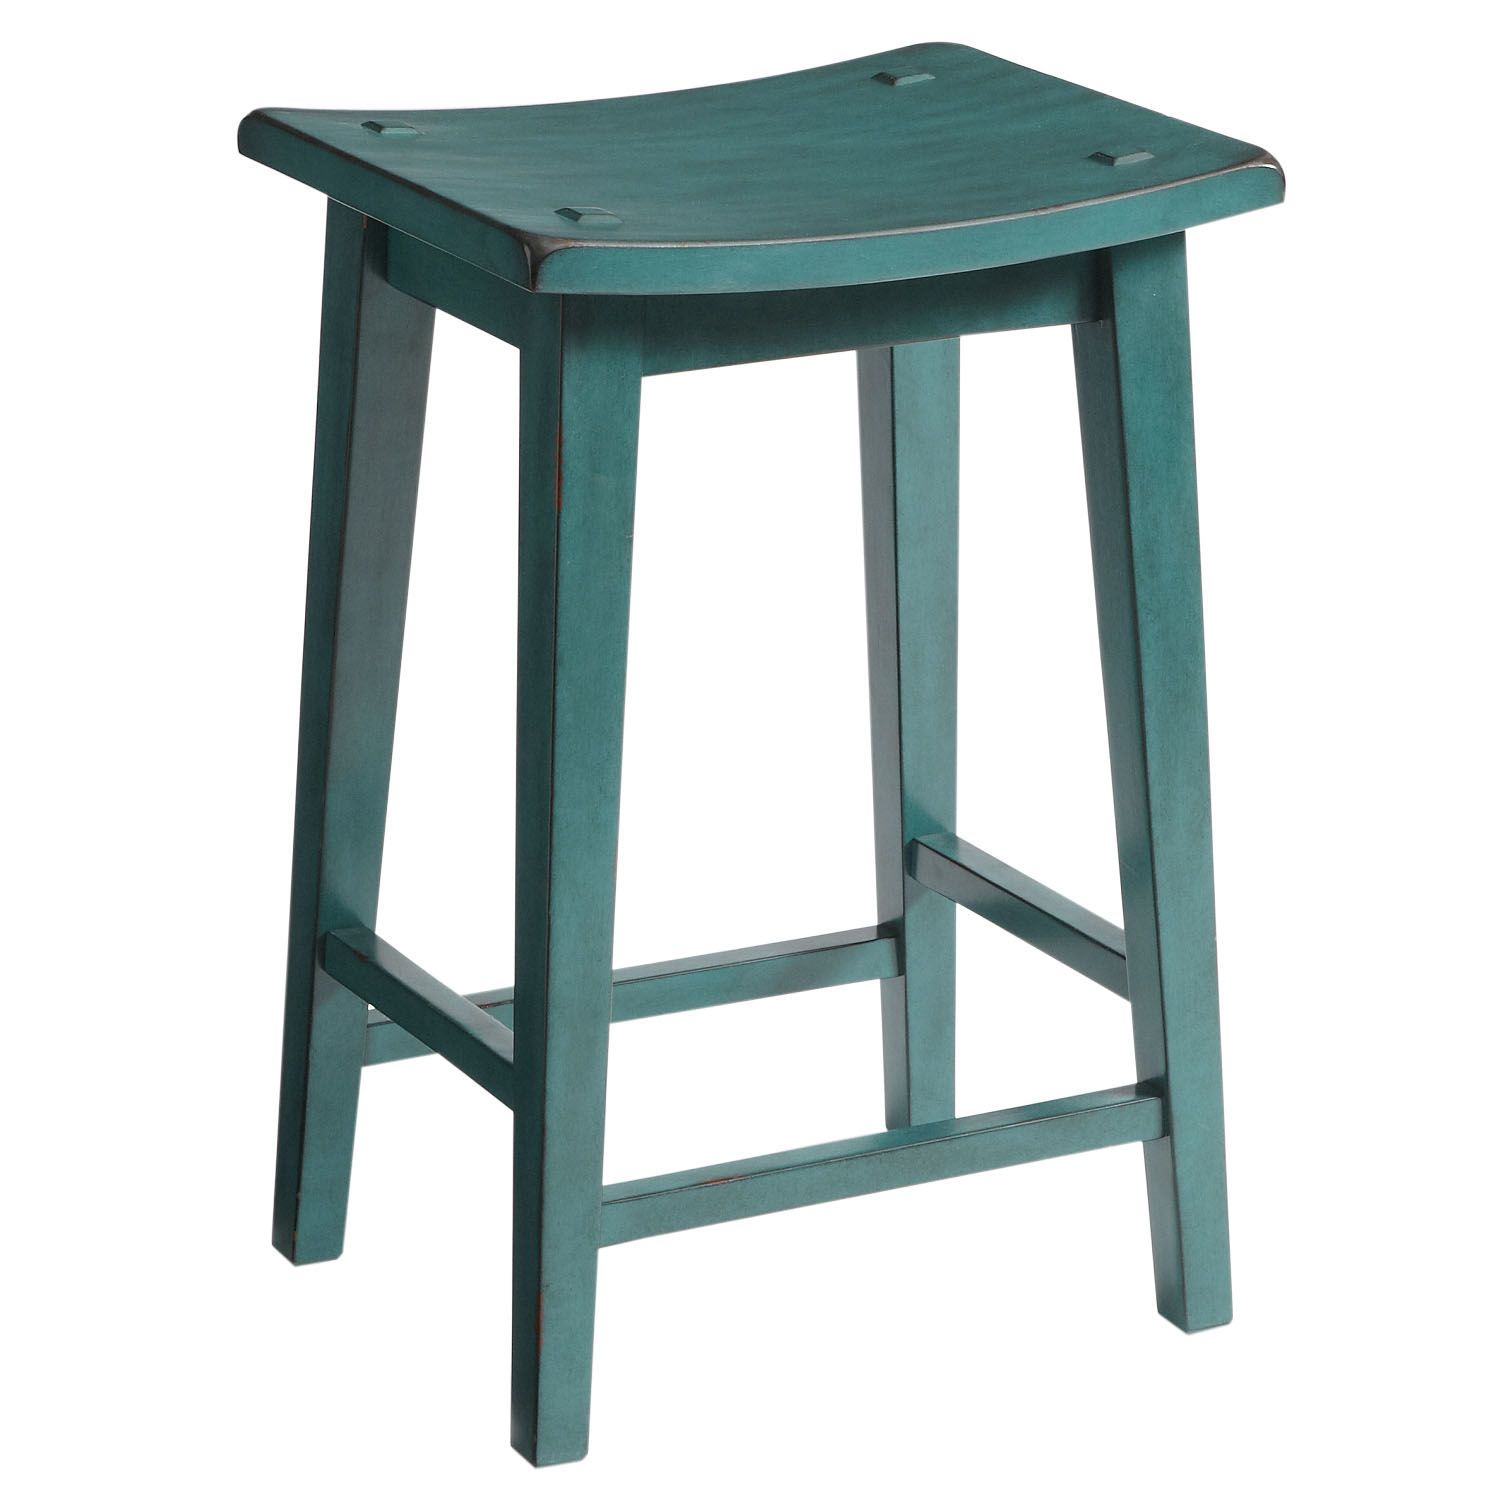 Lawson Backless Bar & Counter Stools Teal